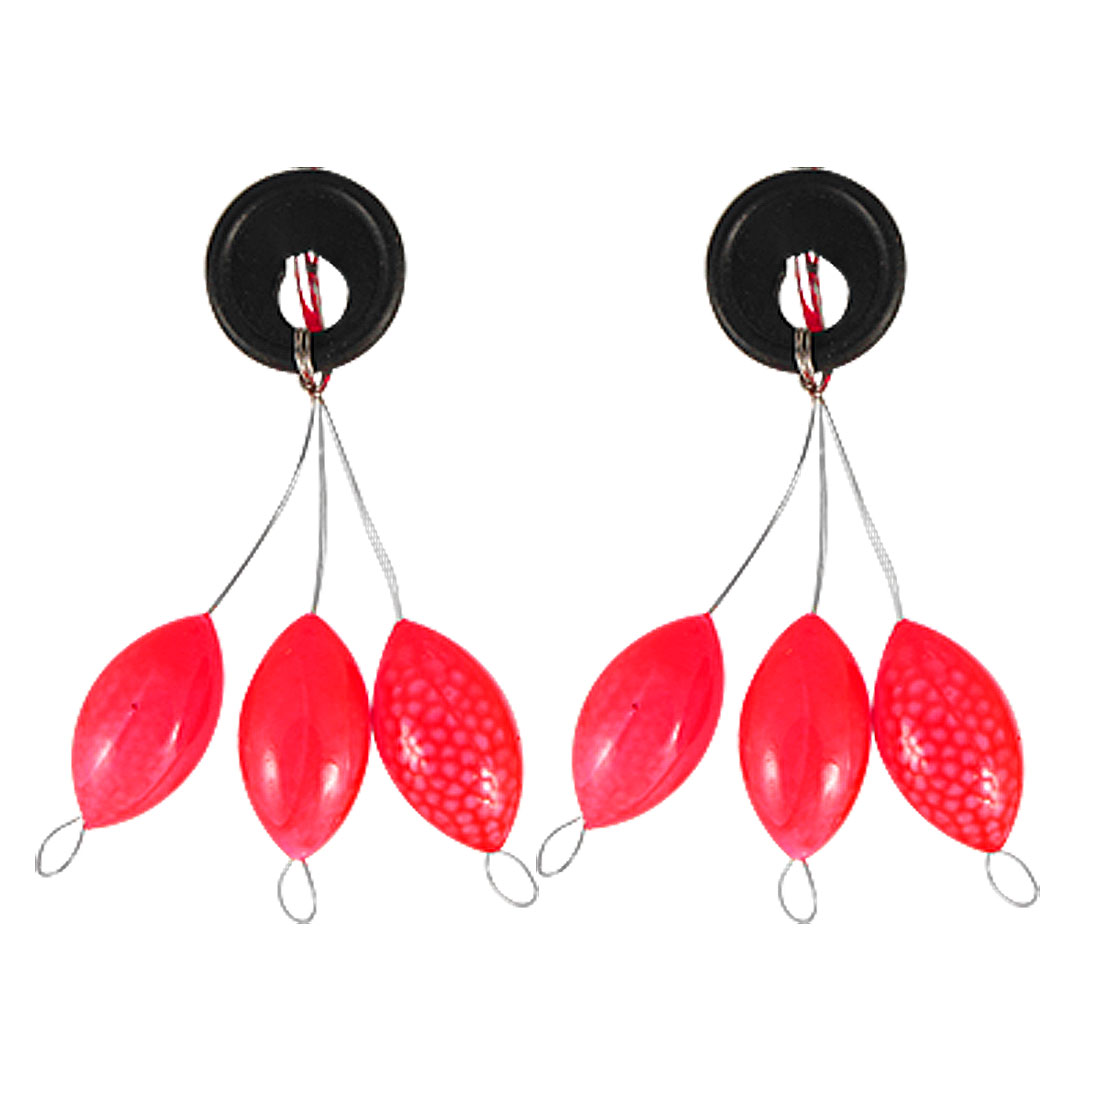 2 Pcs Fishing Tackle Red Oval Plastic Floater Bobber Stopper